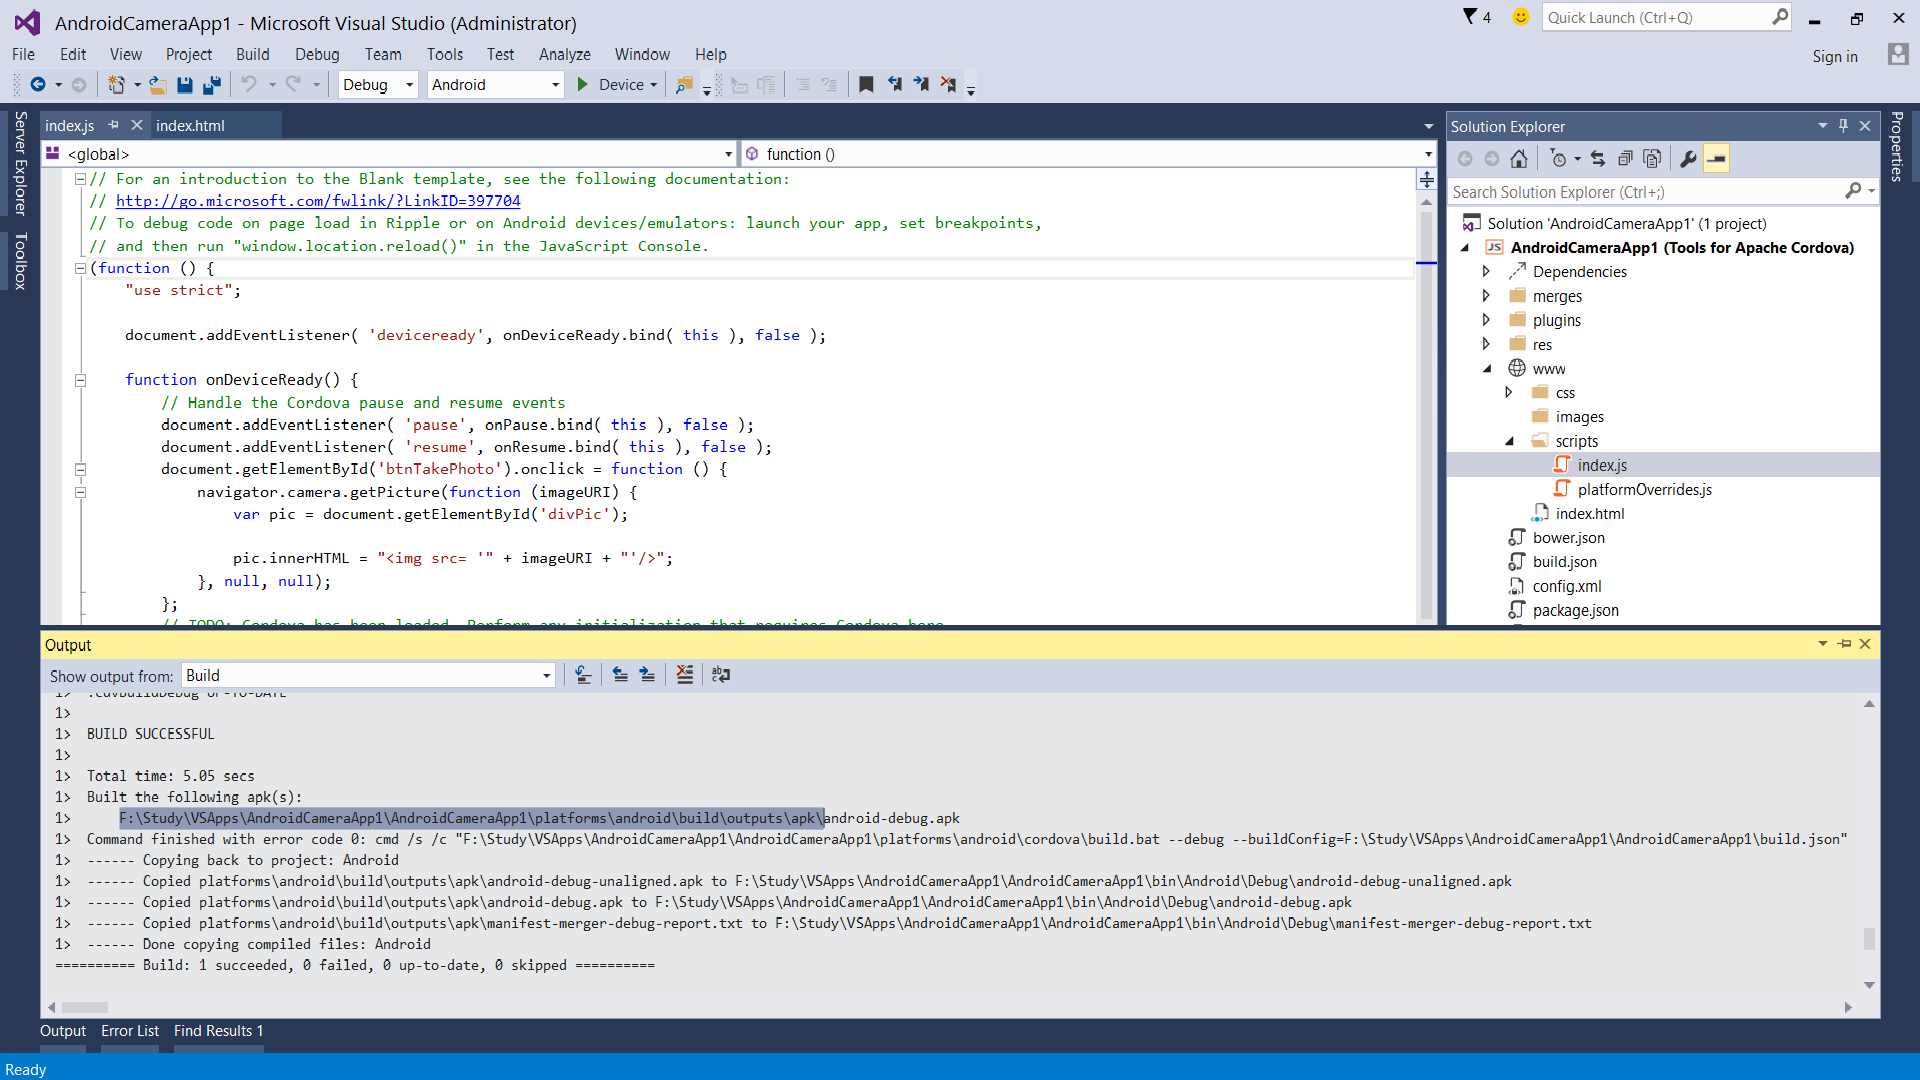 Visual Studio 2015: creating Android Camera App - TechNet Articles